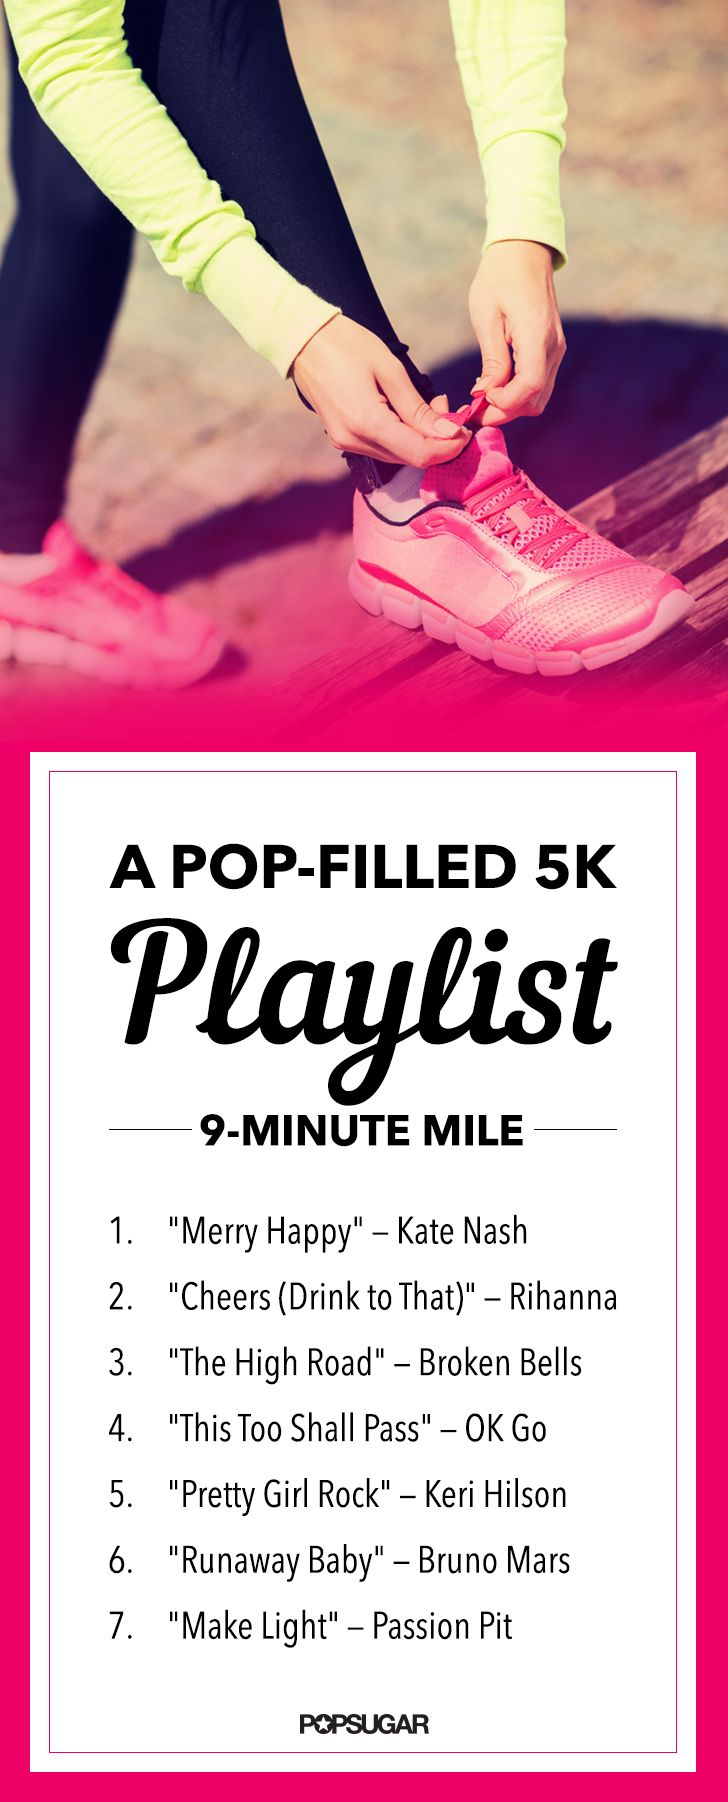 A 5K Playlist That Will Keep You at a 9-Minute Mile